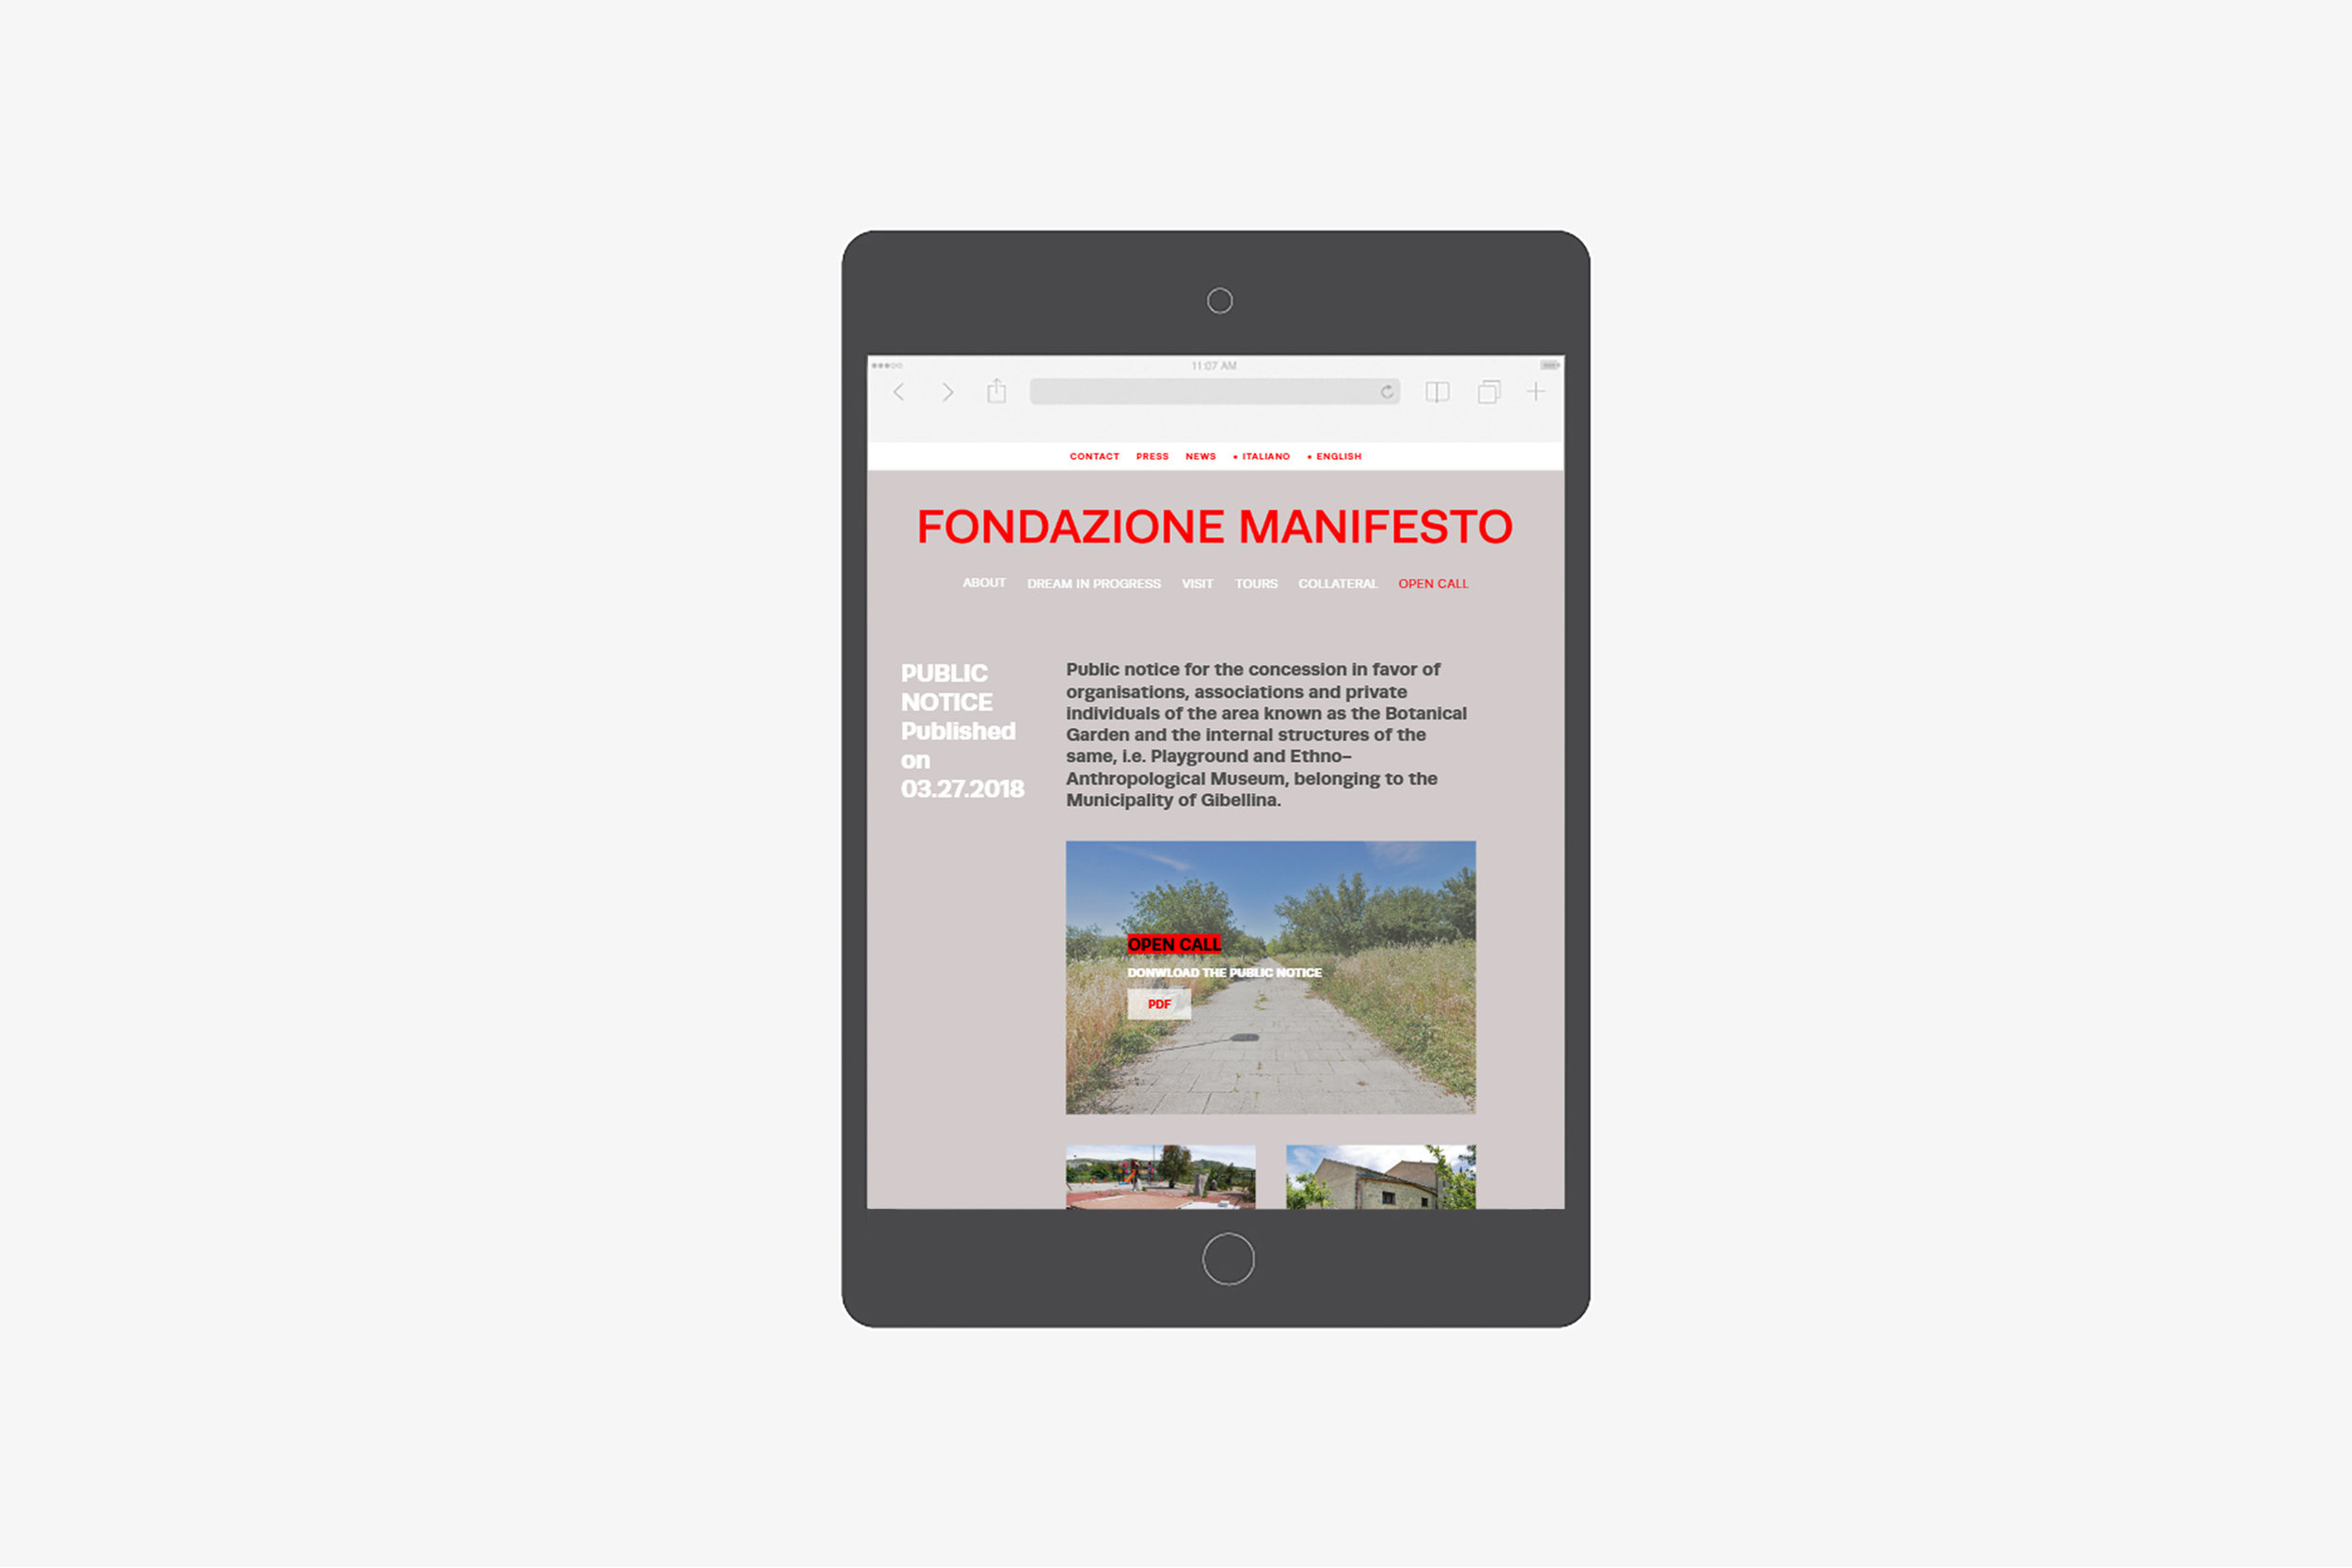 Fondazione Manifesto_TABLET - Open call TOP.jpg